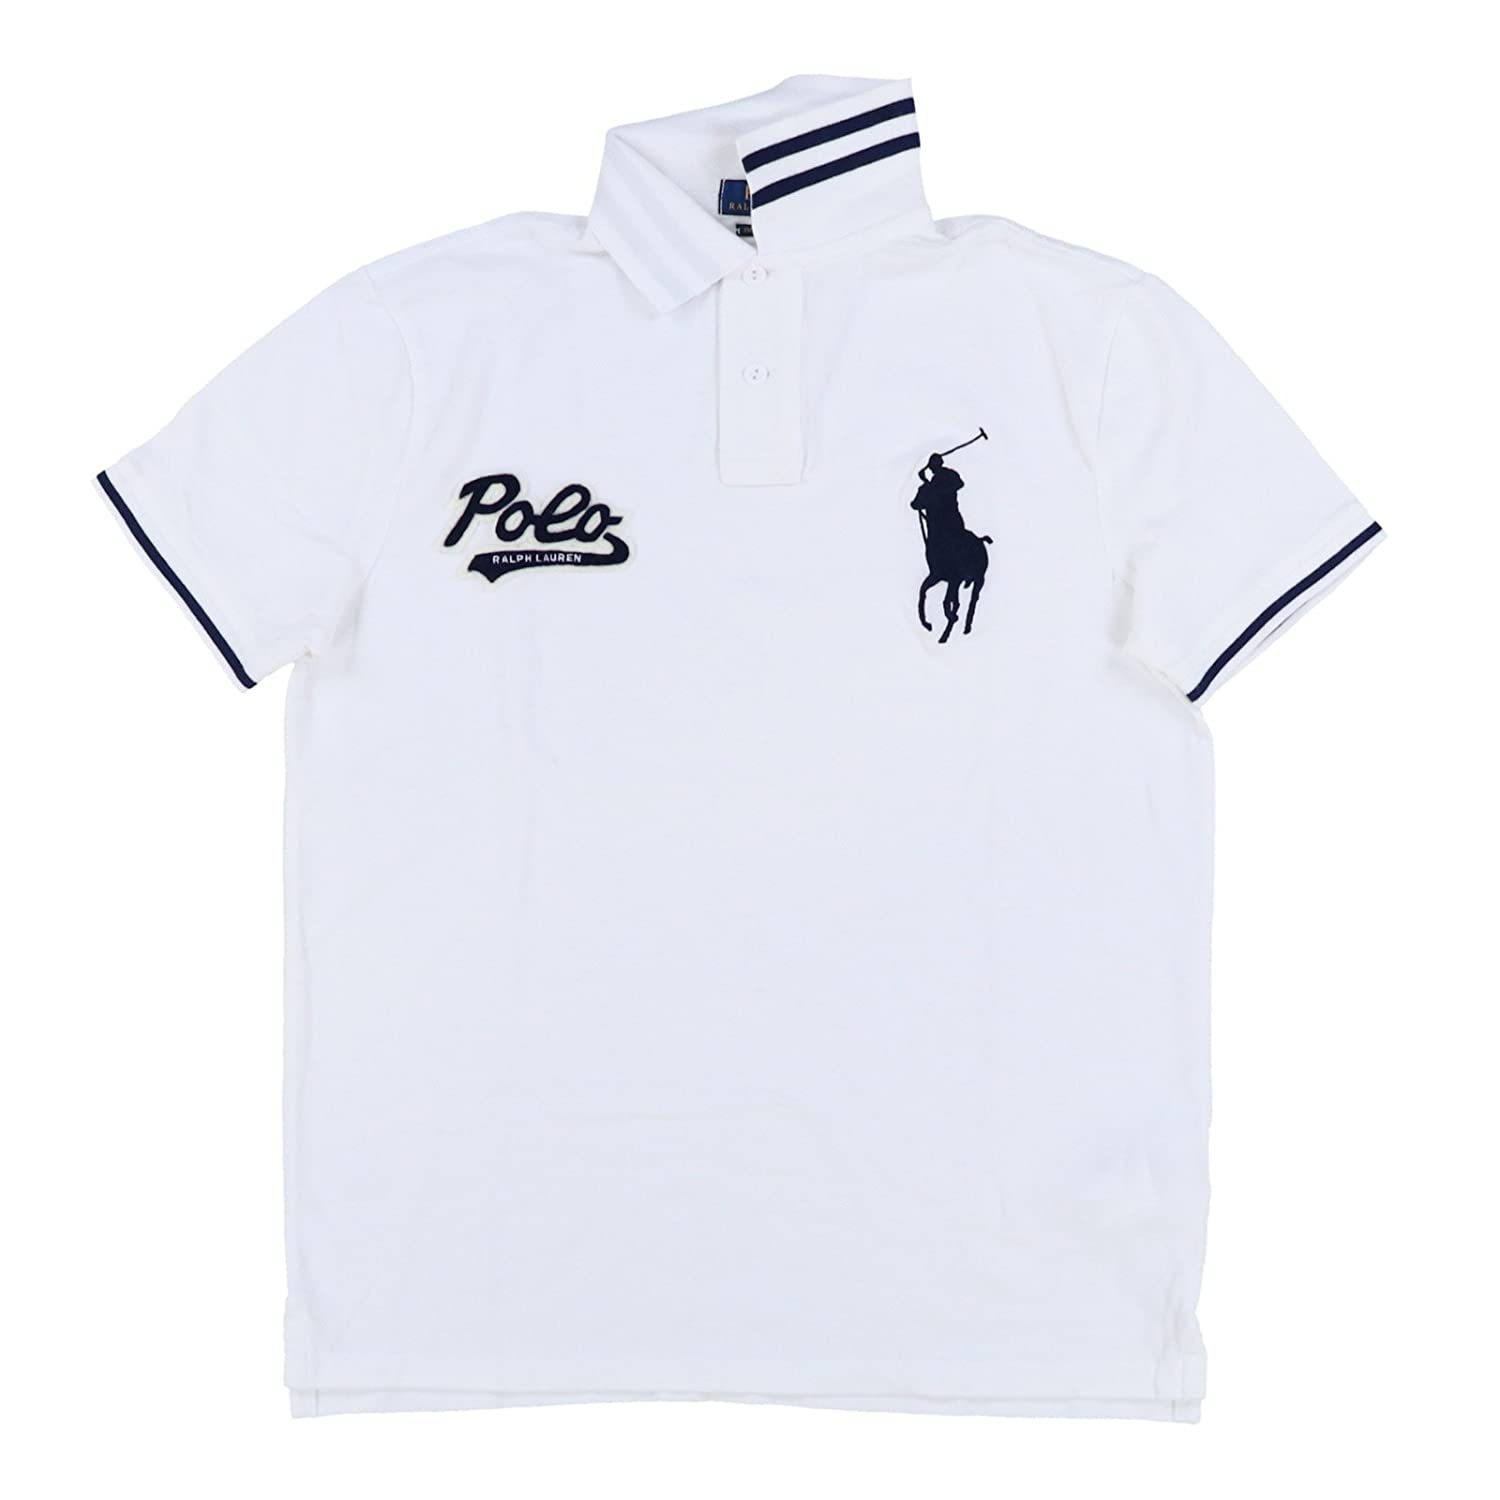 Polo Ralph Lauren Mens Custom Slim Fit Big Pony Polo Shirt